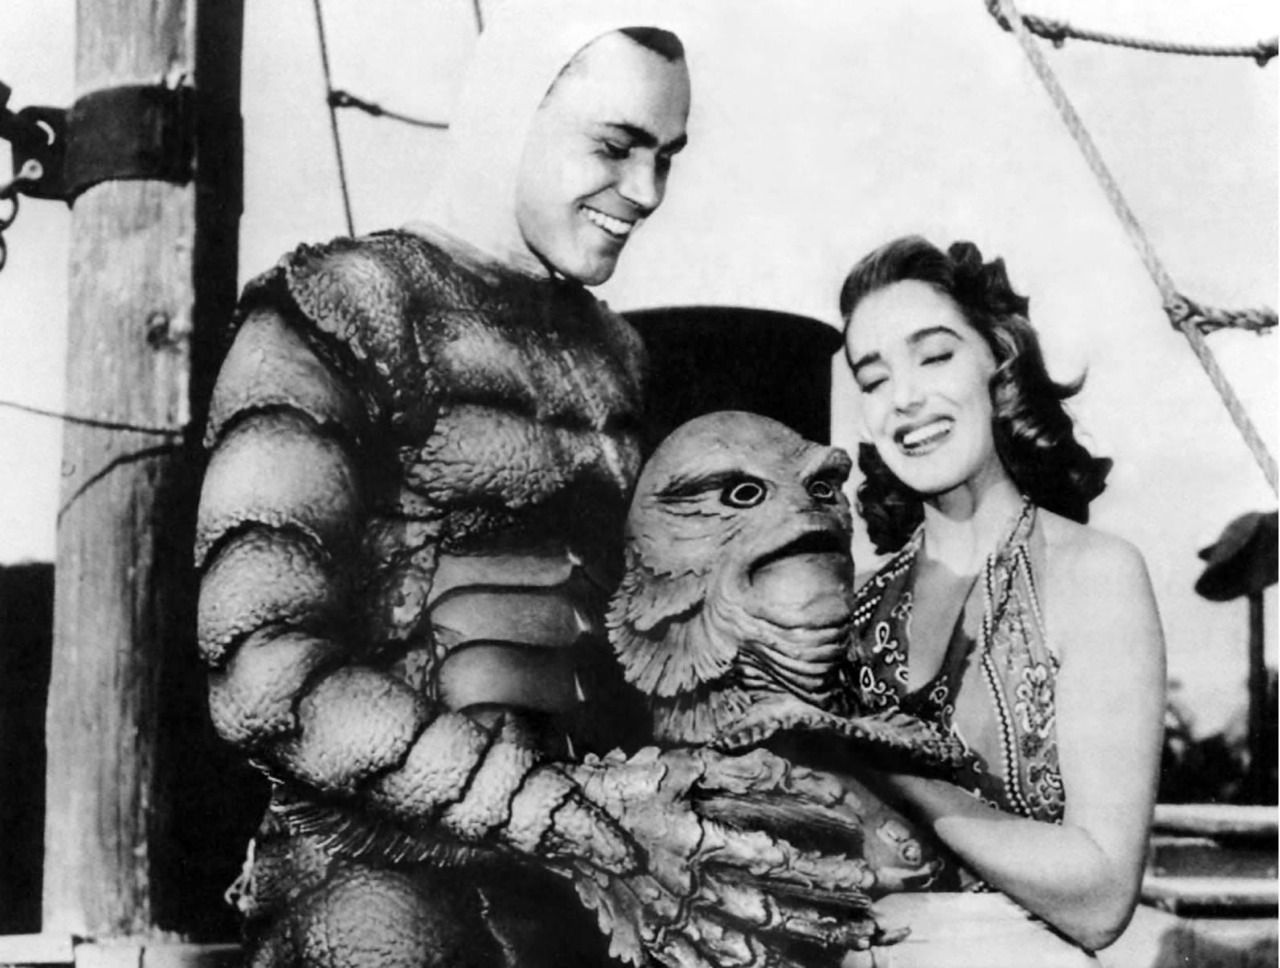 julie adams and the headless creature